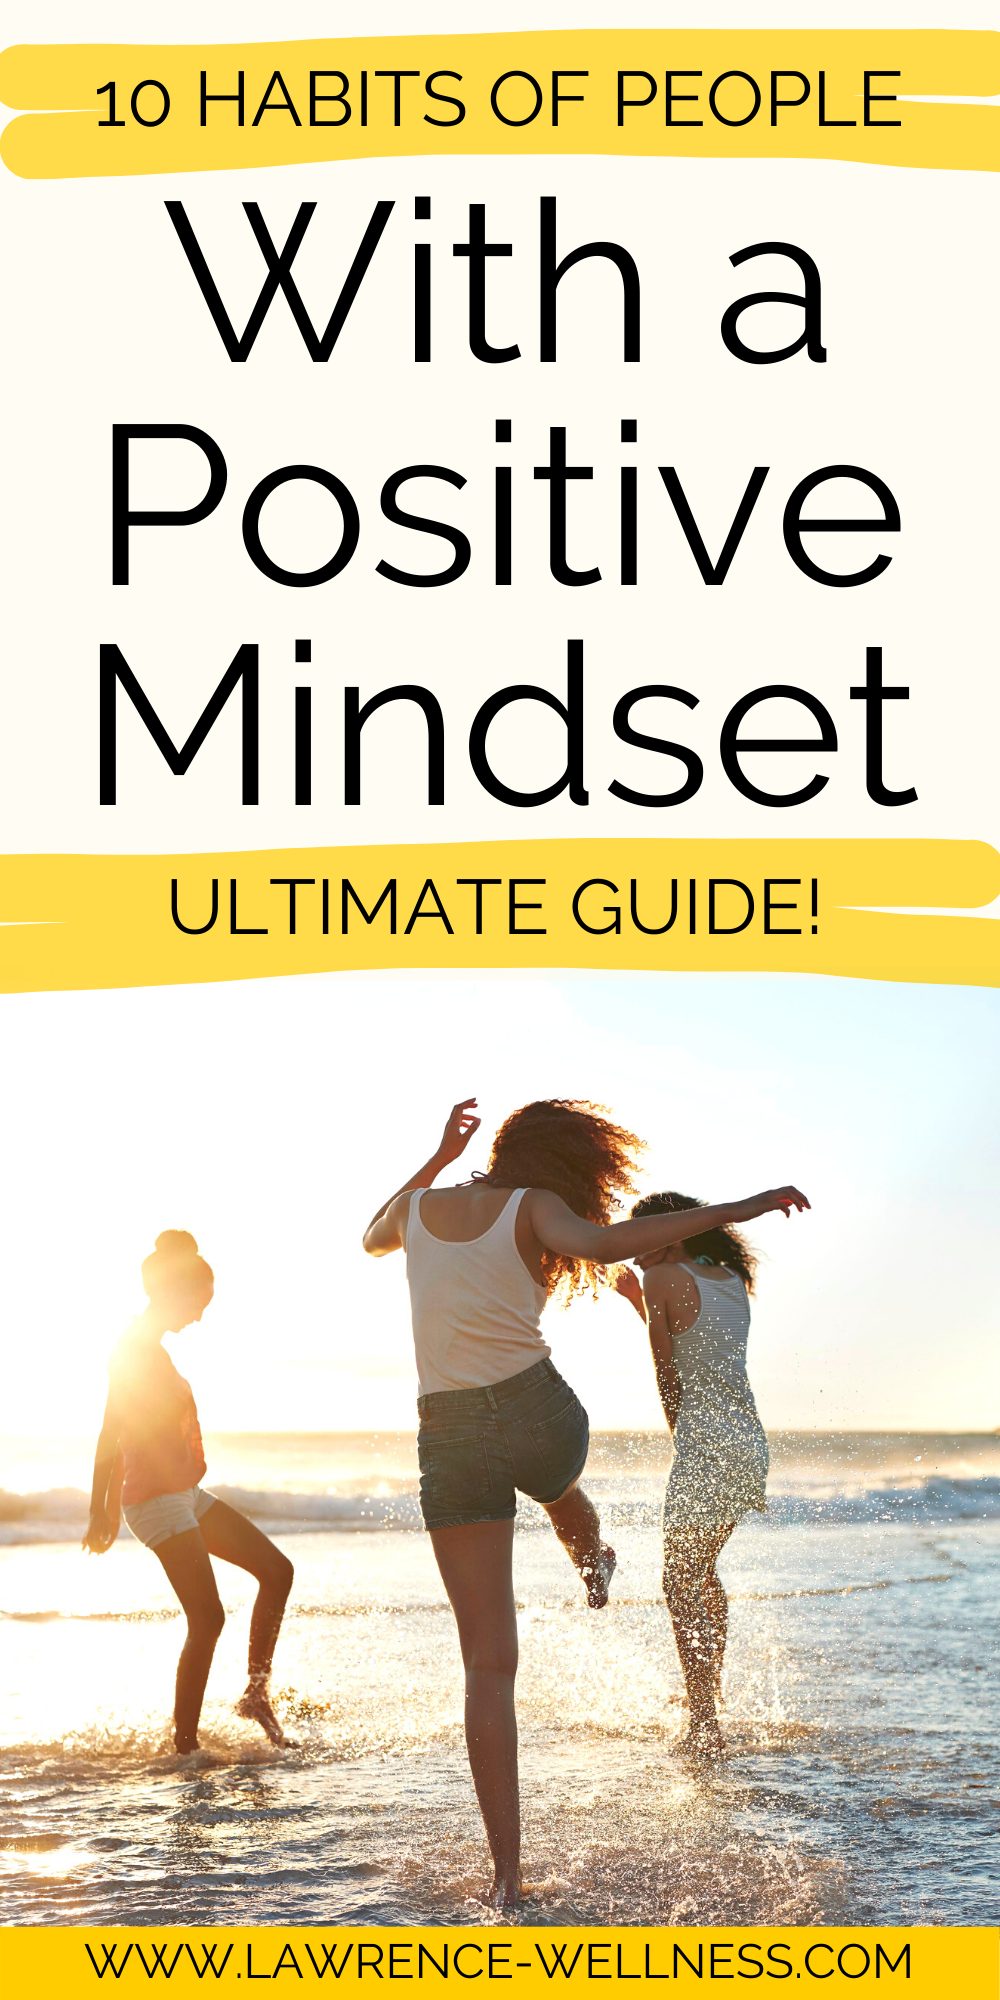 10-Habits-of-People-with-a-Positive-Mindset